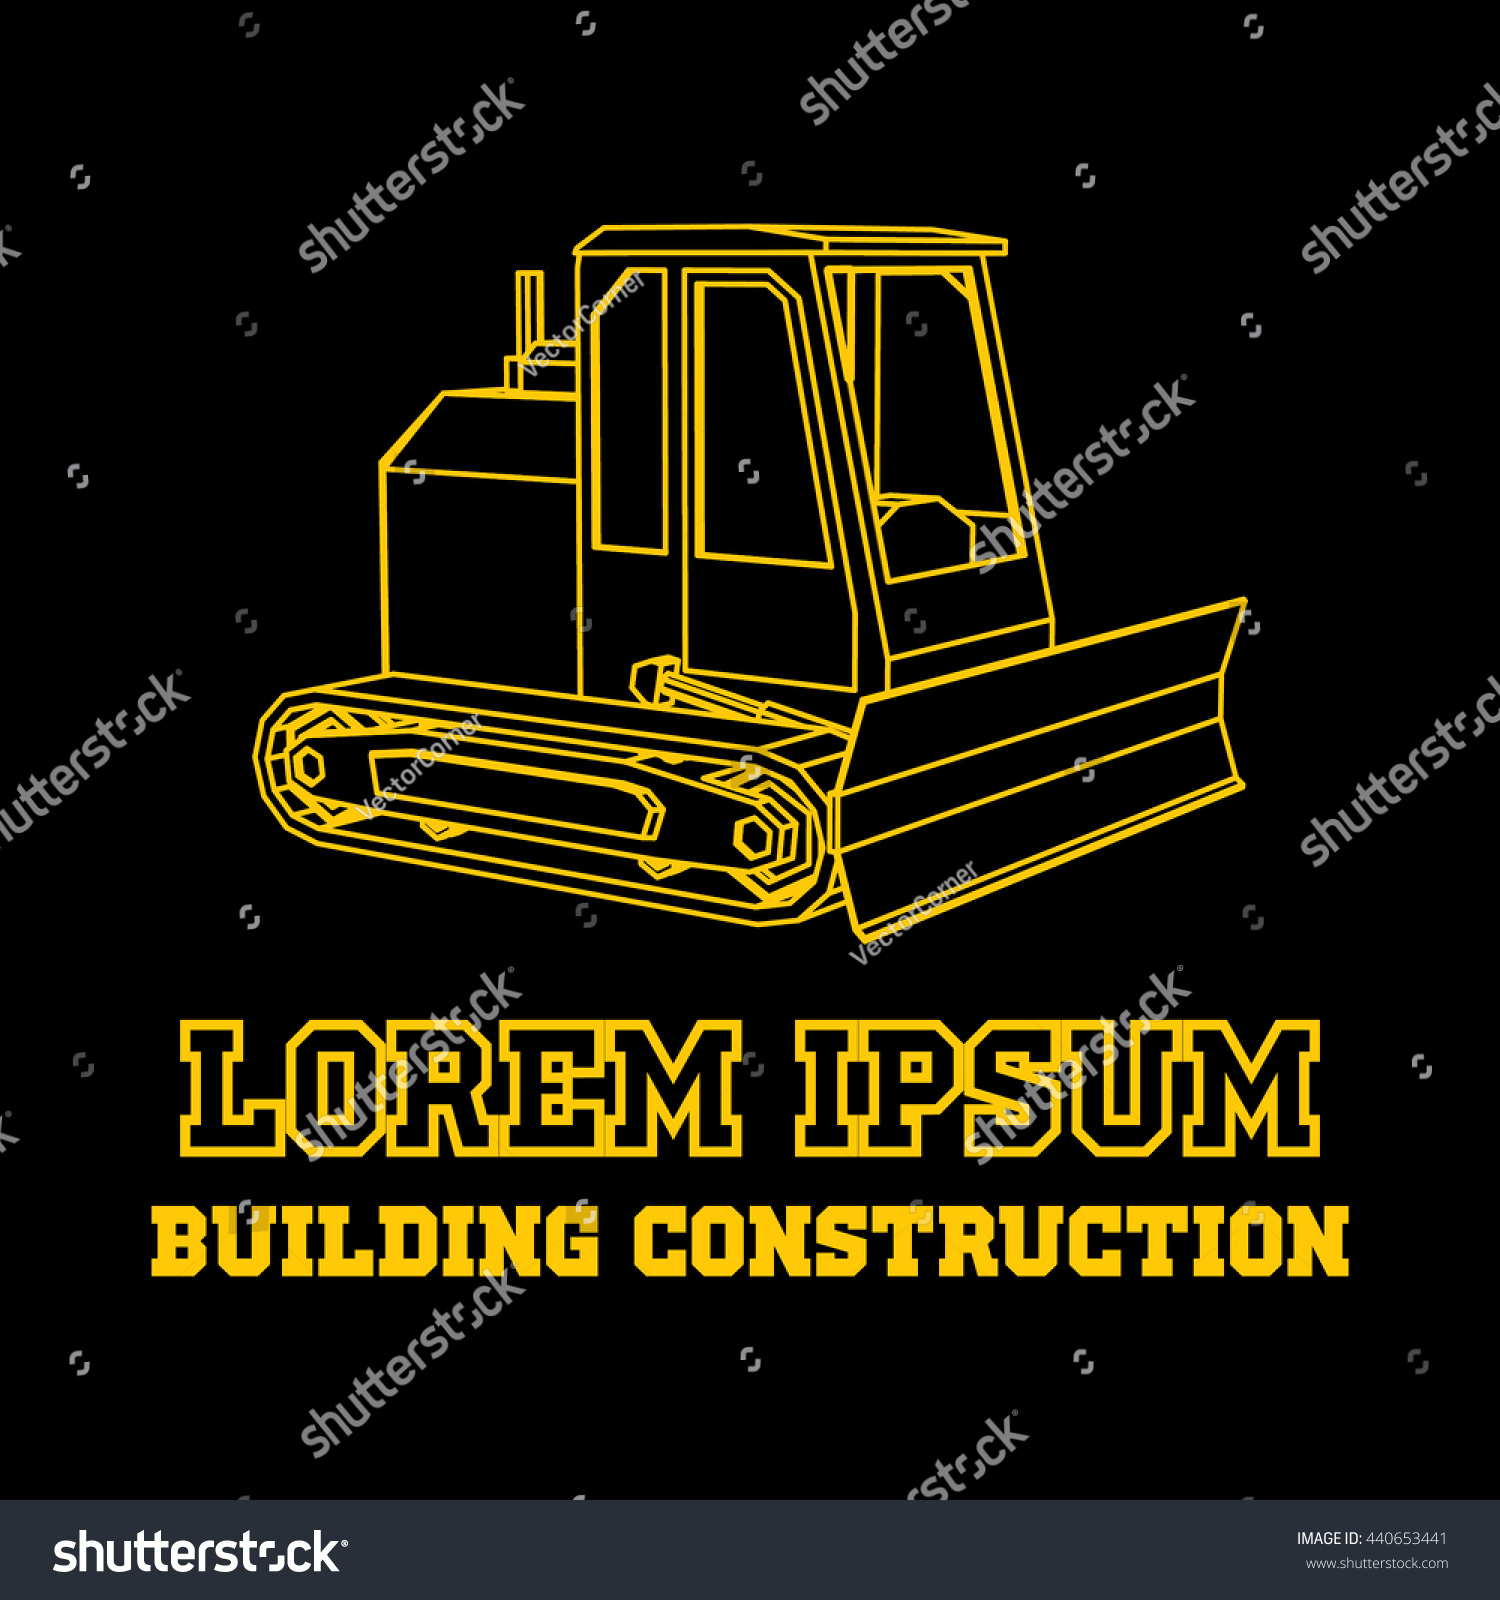 55 elegant collection of heavy equipment business cards business heavy equipment business cards isometric excavator icon building construction illustration magicingreecefo Gallery